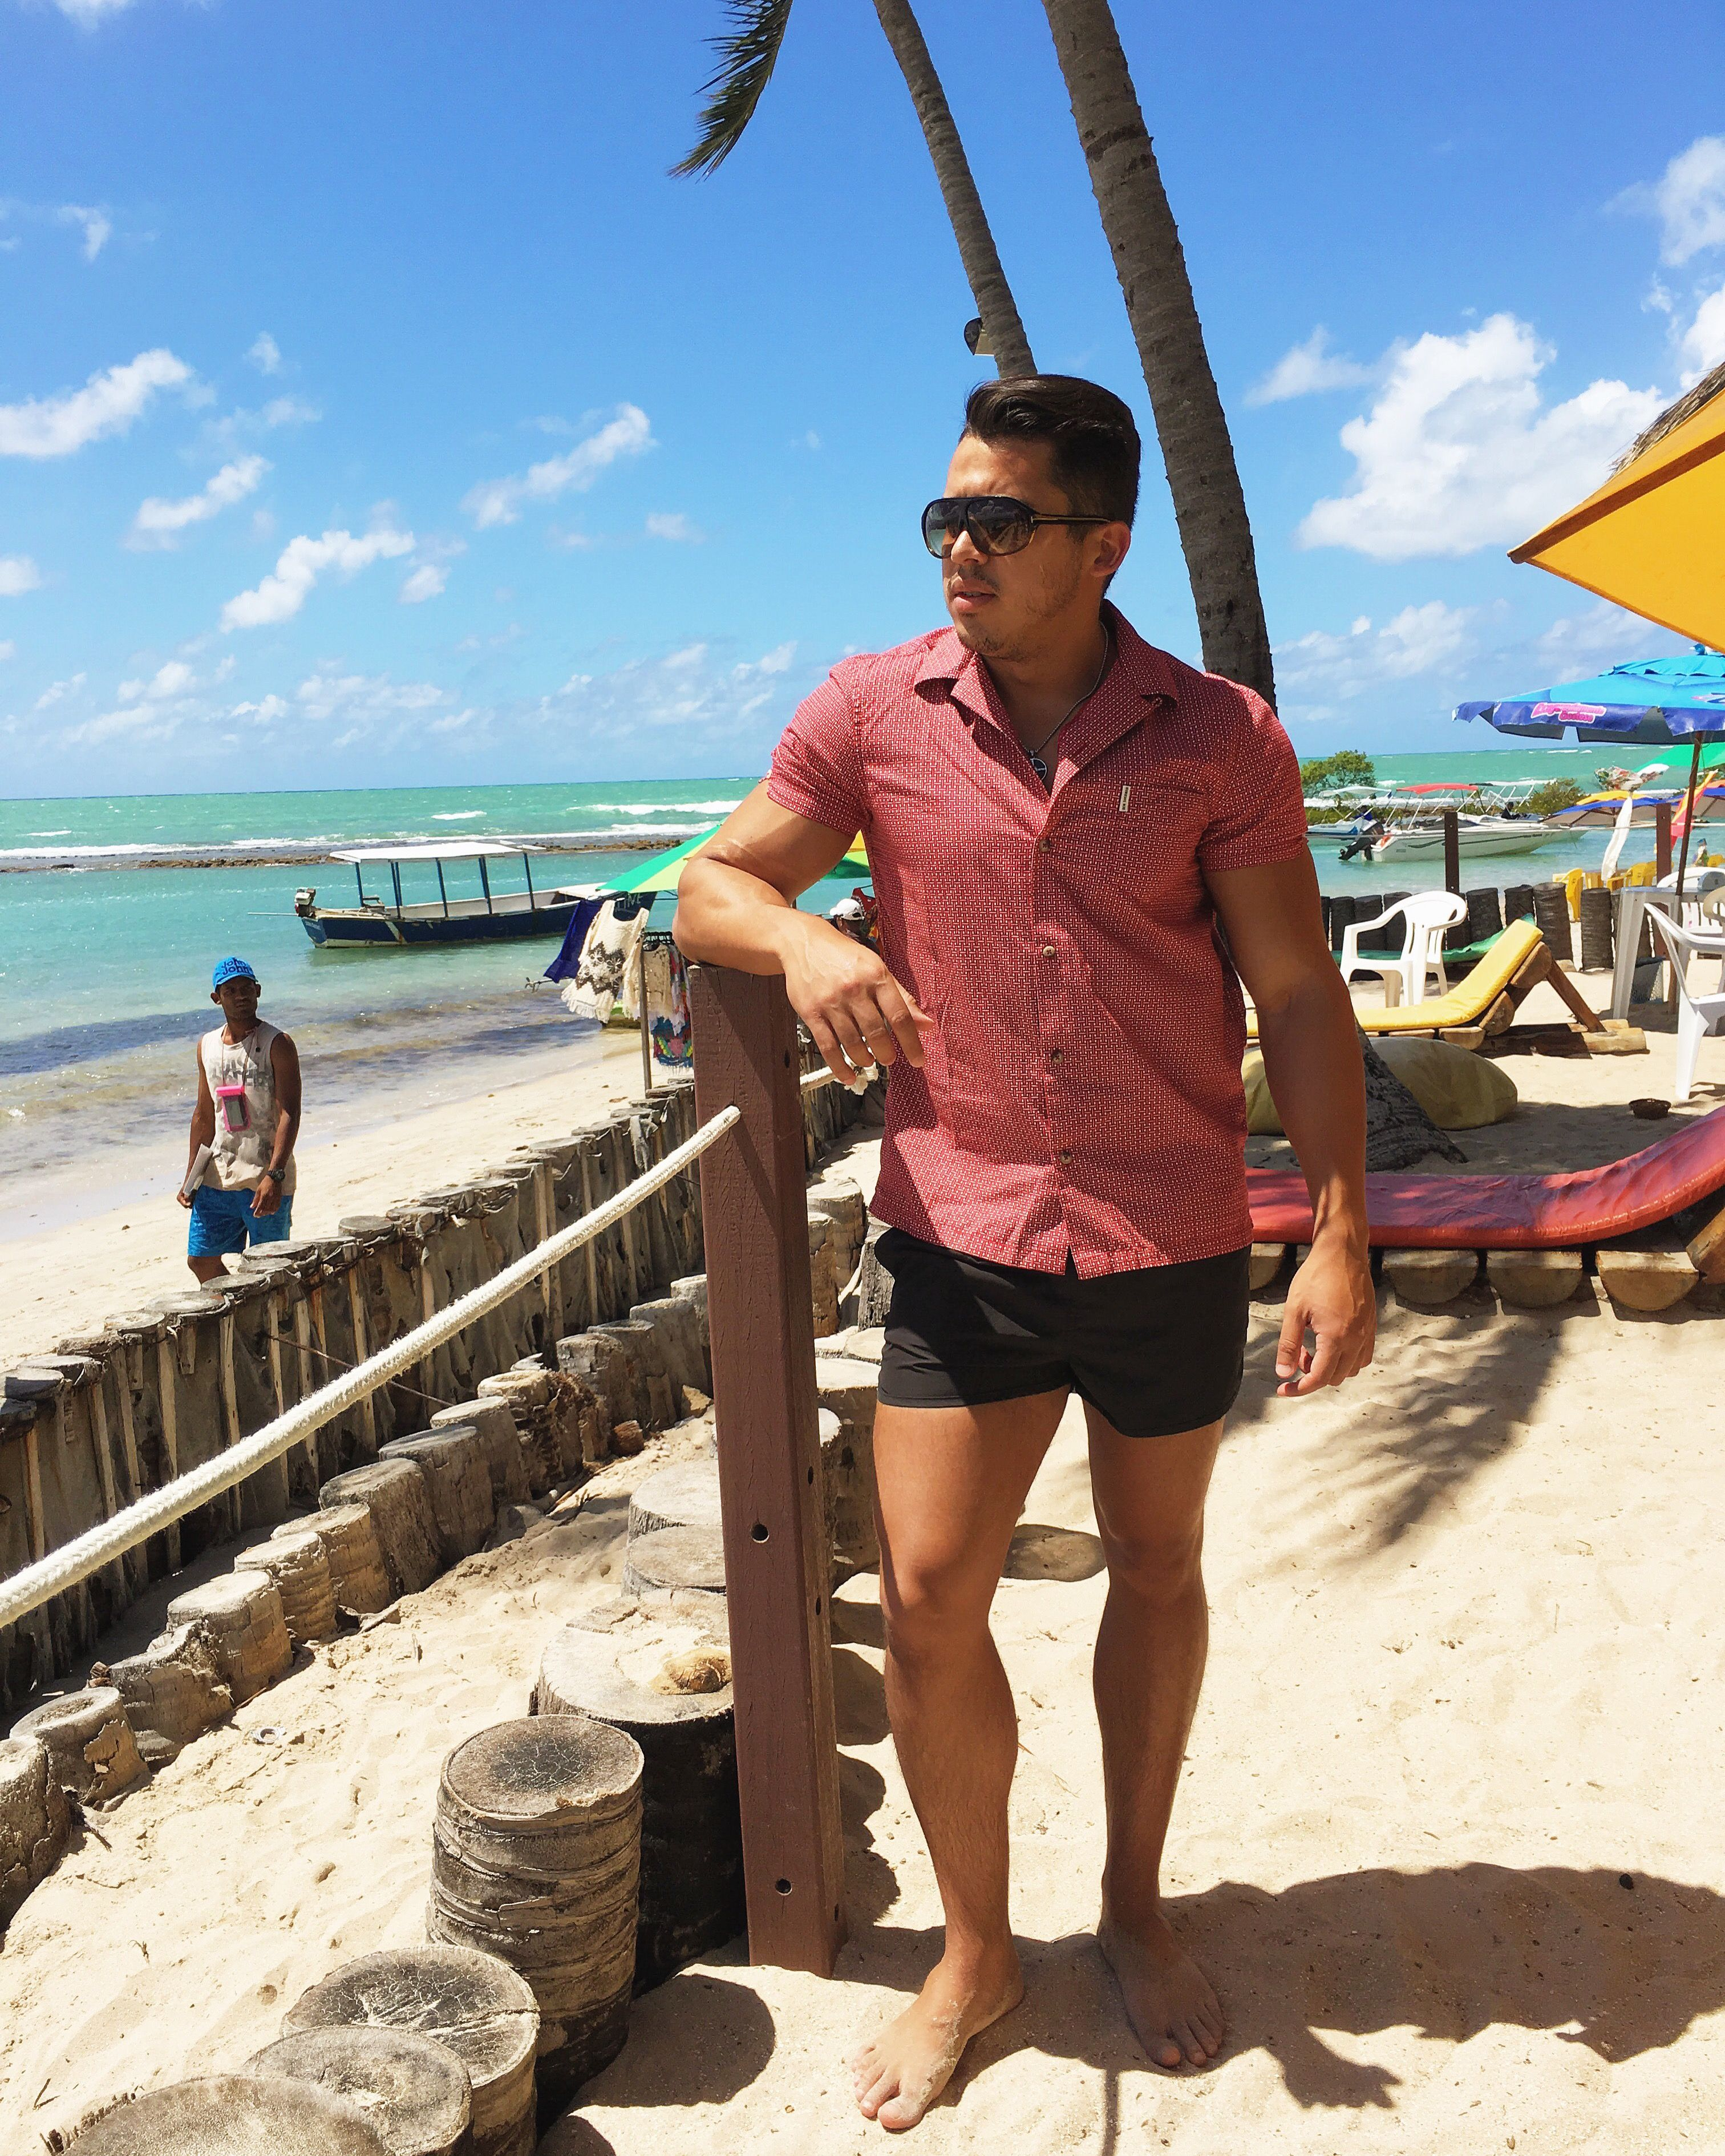 8a155af9cee8 4 Men's Beach Outfit To Get You Inspire Before The End Of Summer ...